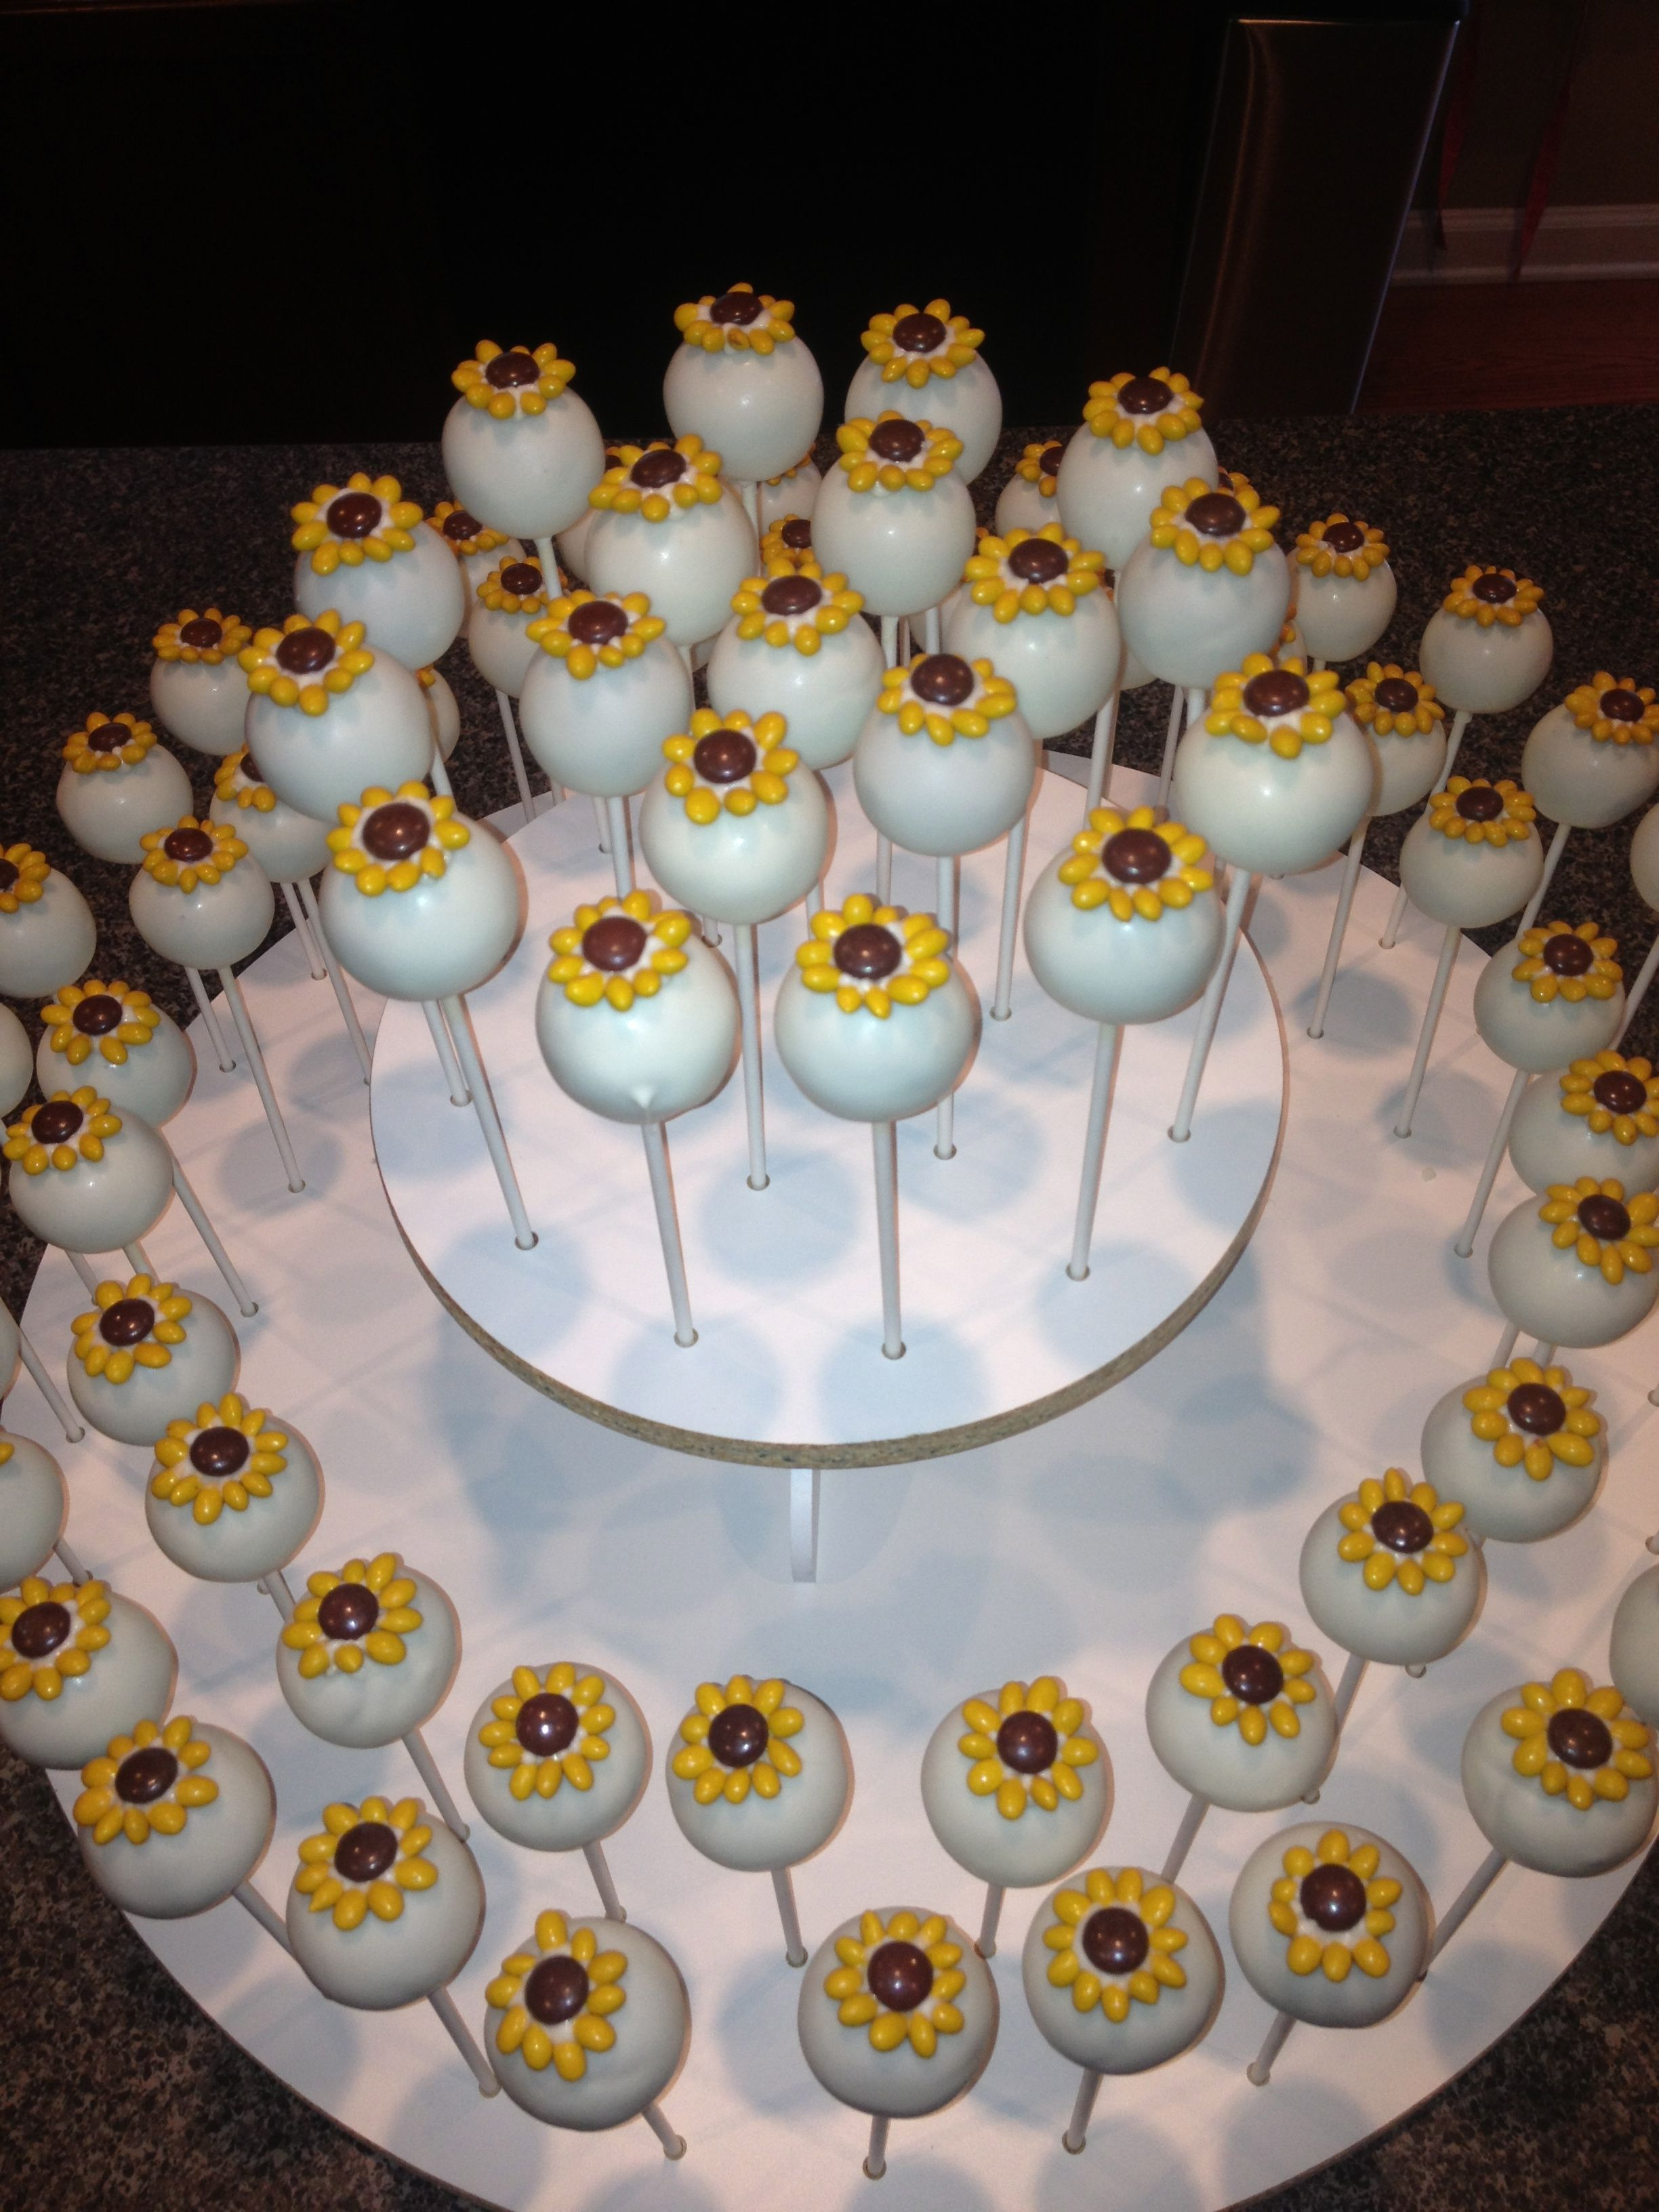 cake pop decorating ideas for weddings sunflower cake pops by www cakepopsbyjen net cake pops 2282